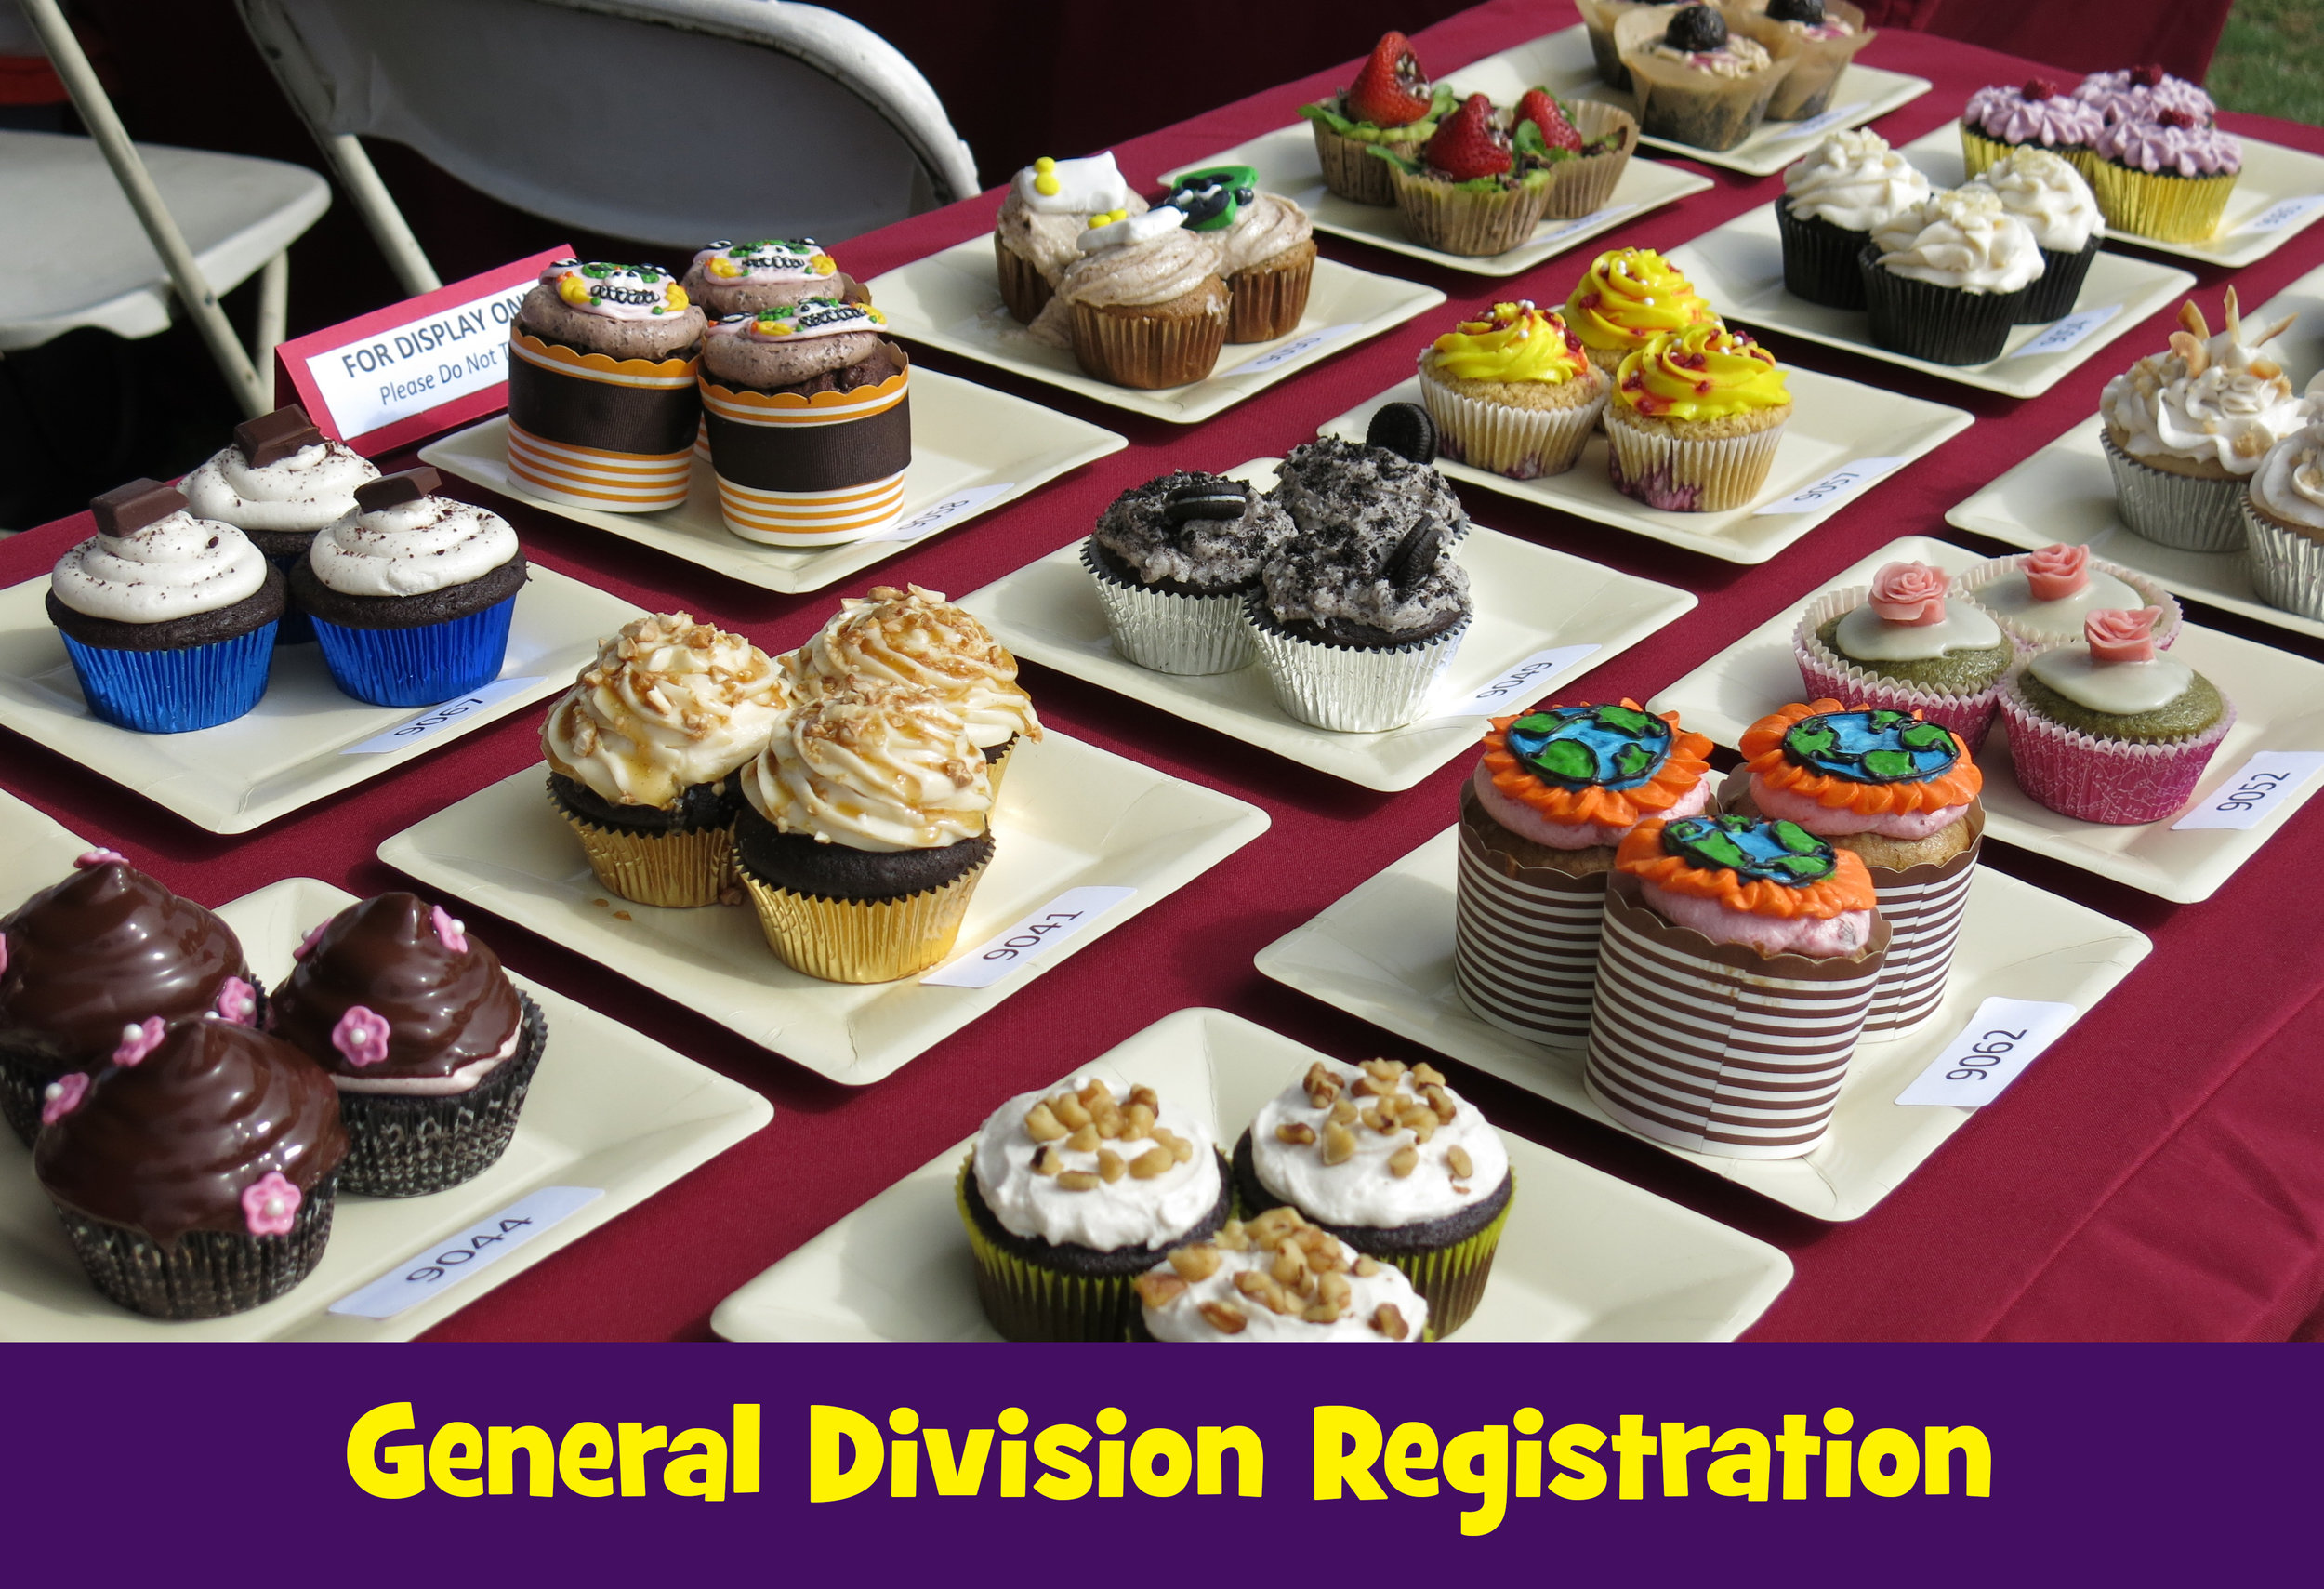 General Registration image.jpg